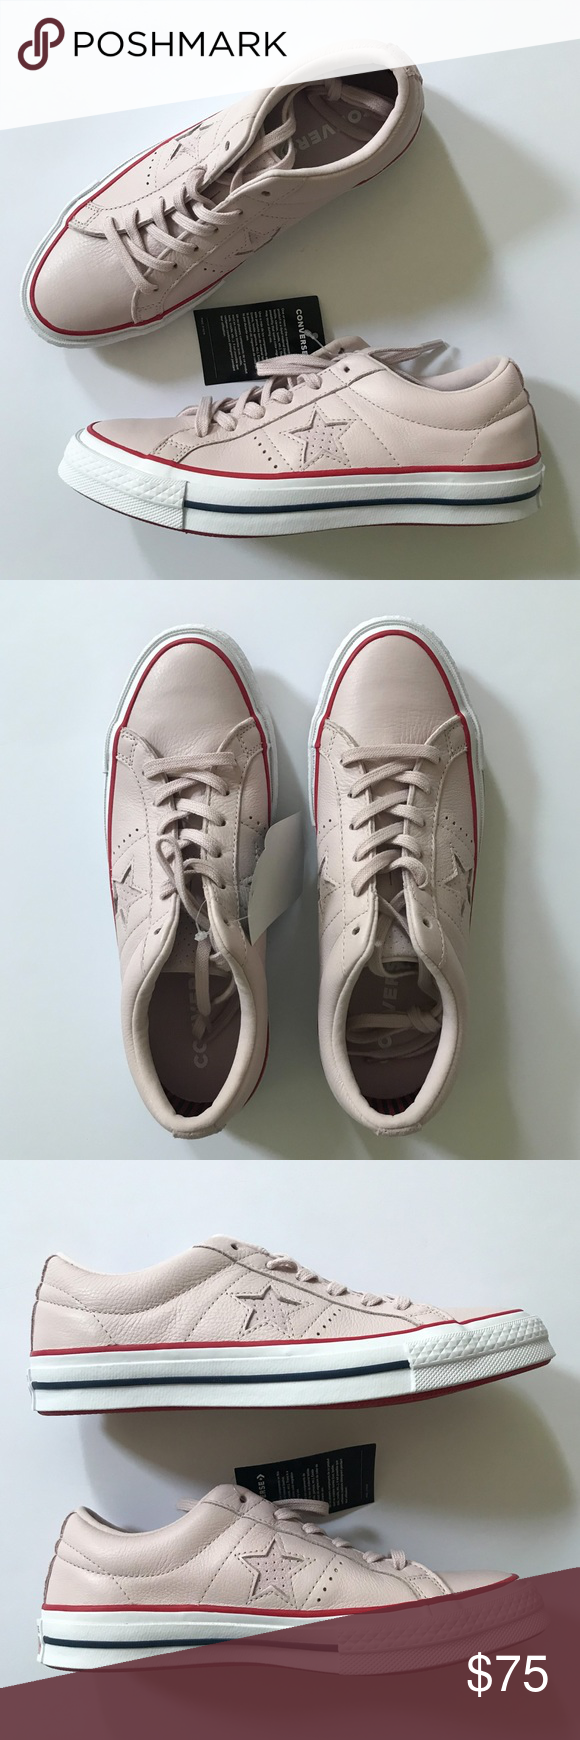 441d4adbe76b Converse One Star Sneaker Barely Rose Pink Smooth leather and a signature  star cutout make this low-top sneaker a sophisticated take on a sporty fave.